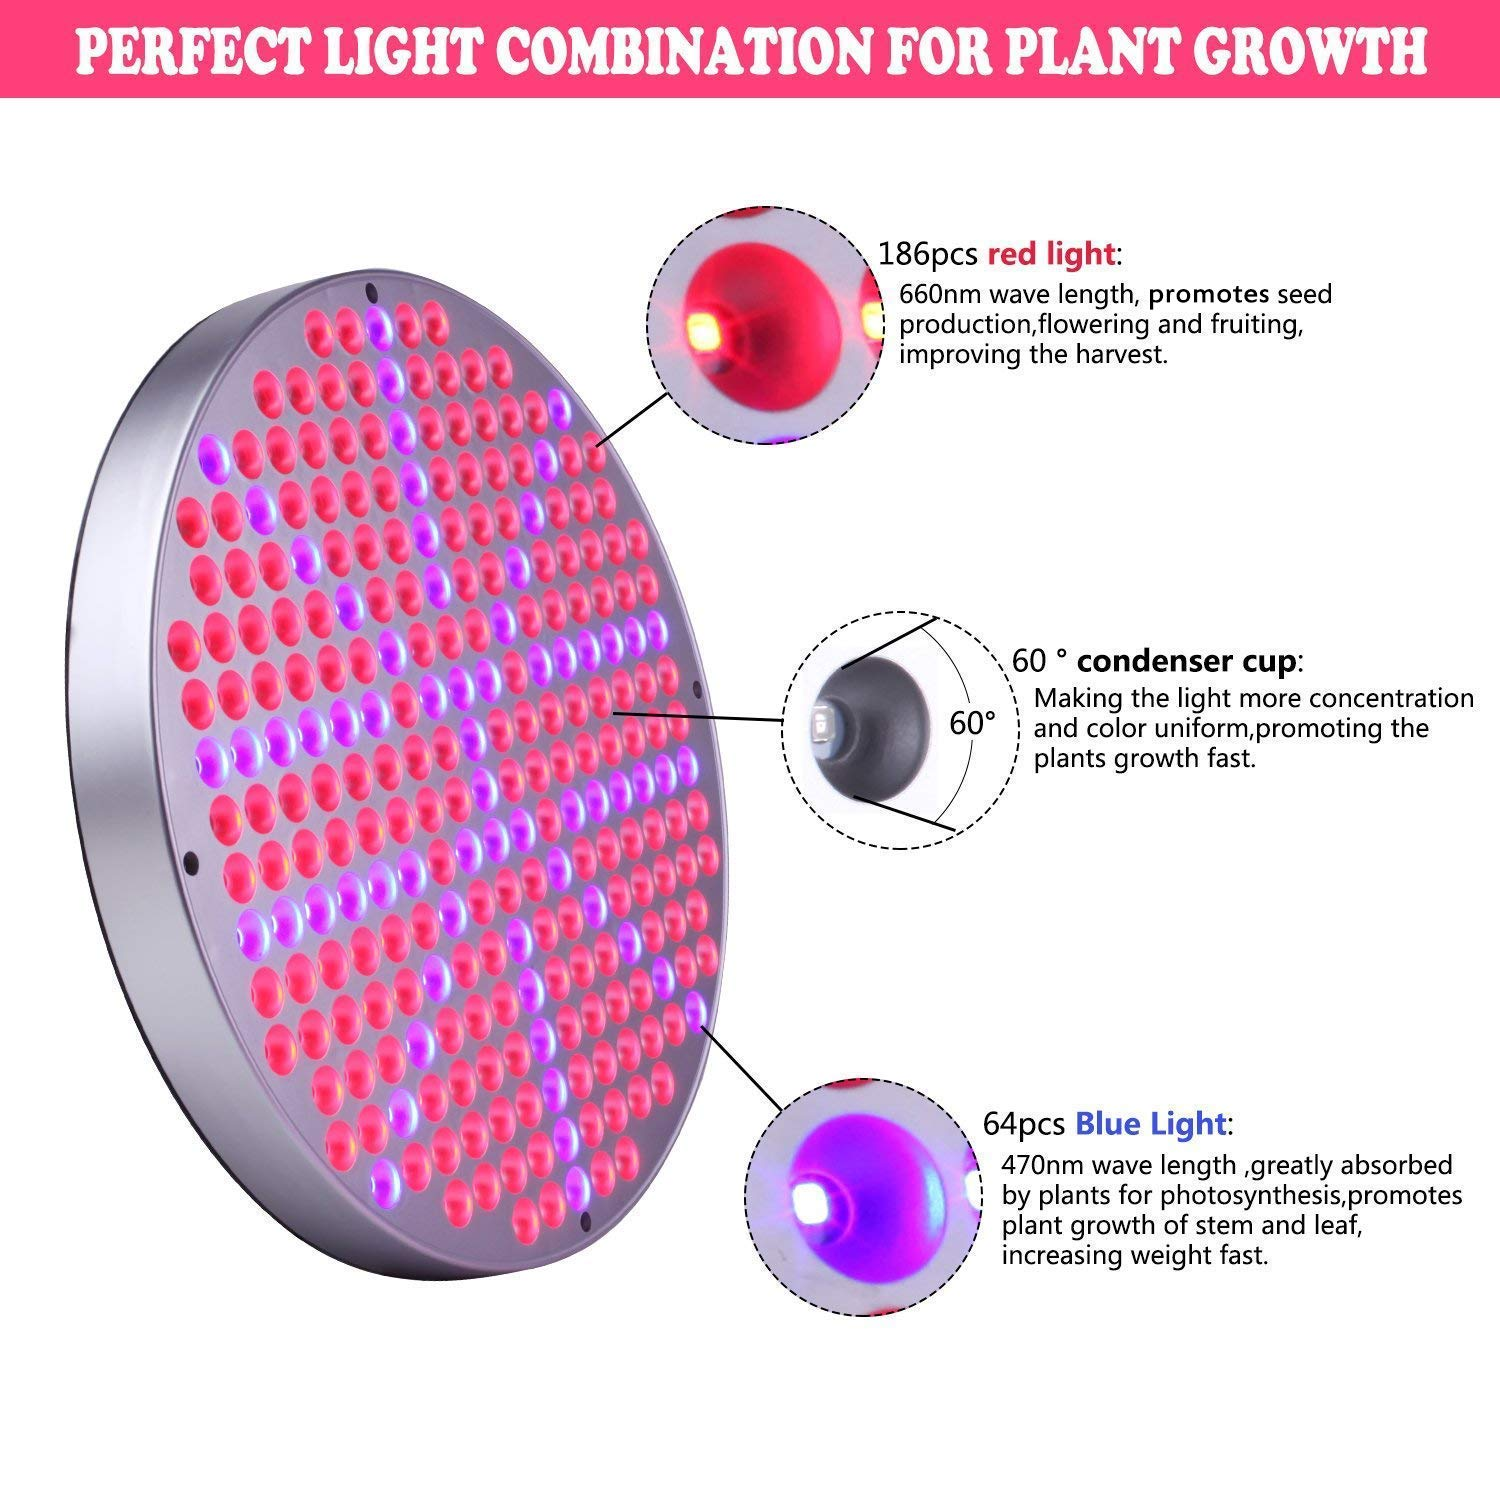 50w Led Plant Grow Lights Shengsite Ufo 250 Leds Dual 3 Watt Lamp Schematic Indoor Plants Growing With Red Blue Spectrum Hydroponics Growth Light For Seedling